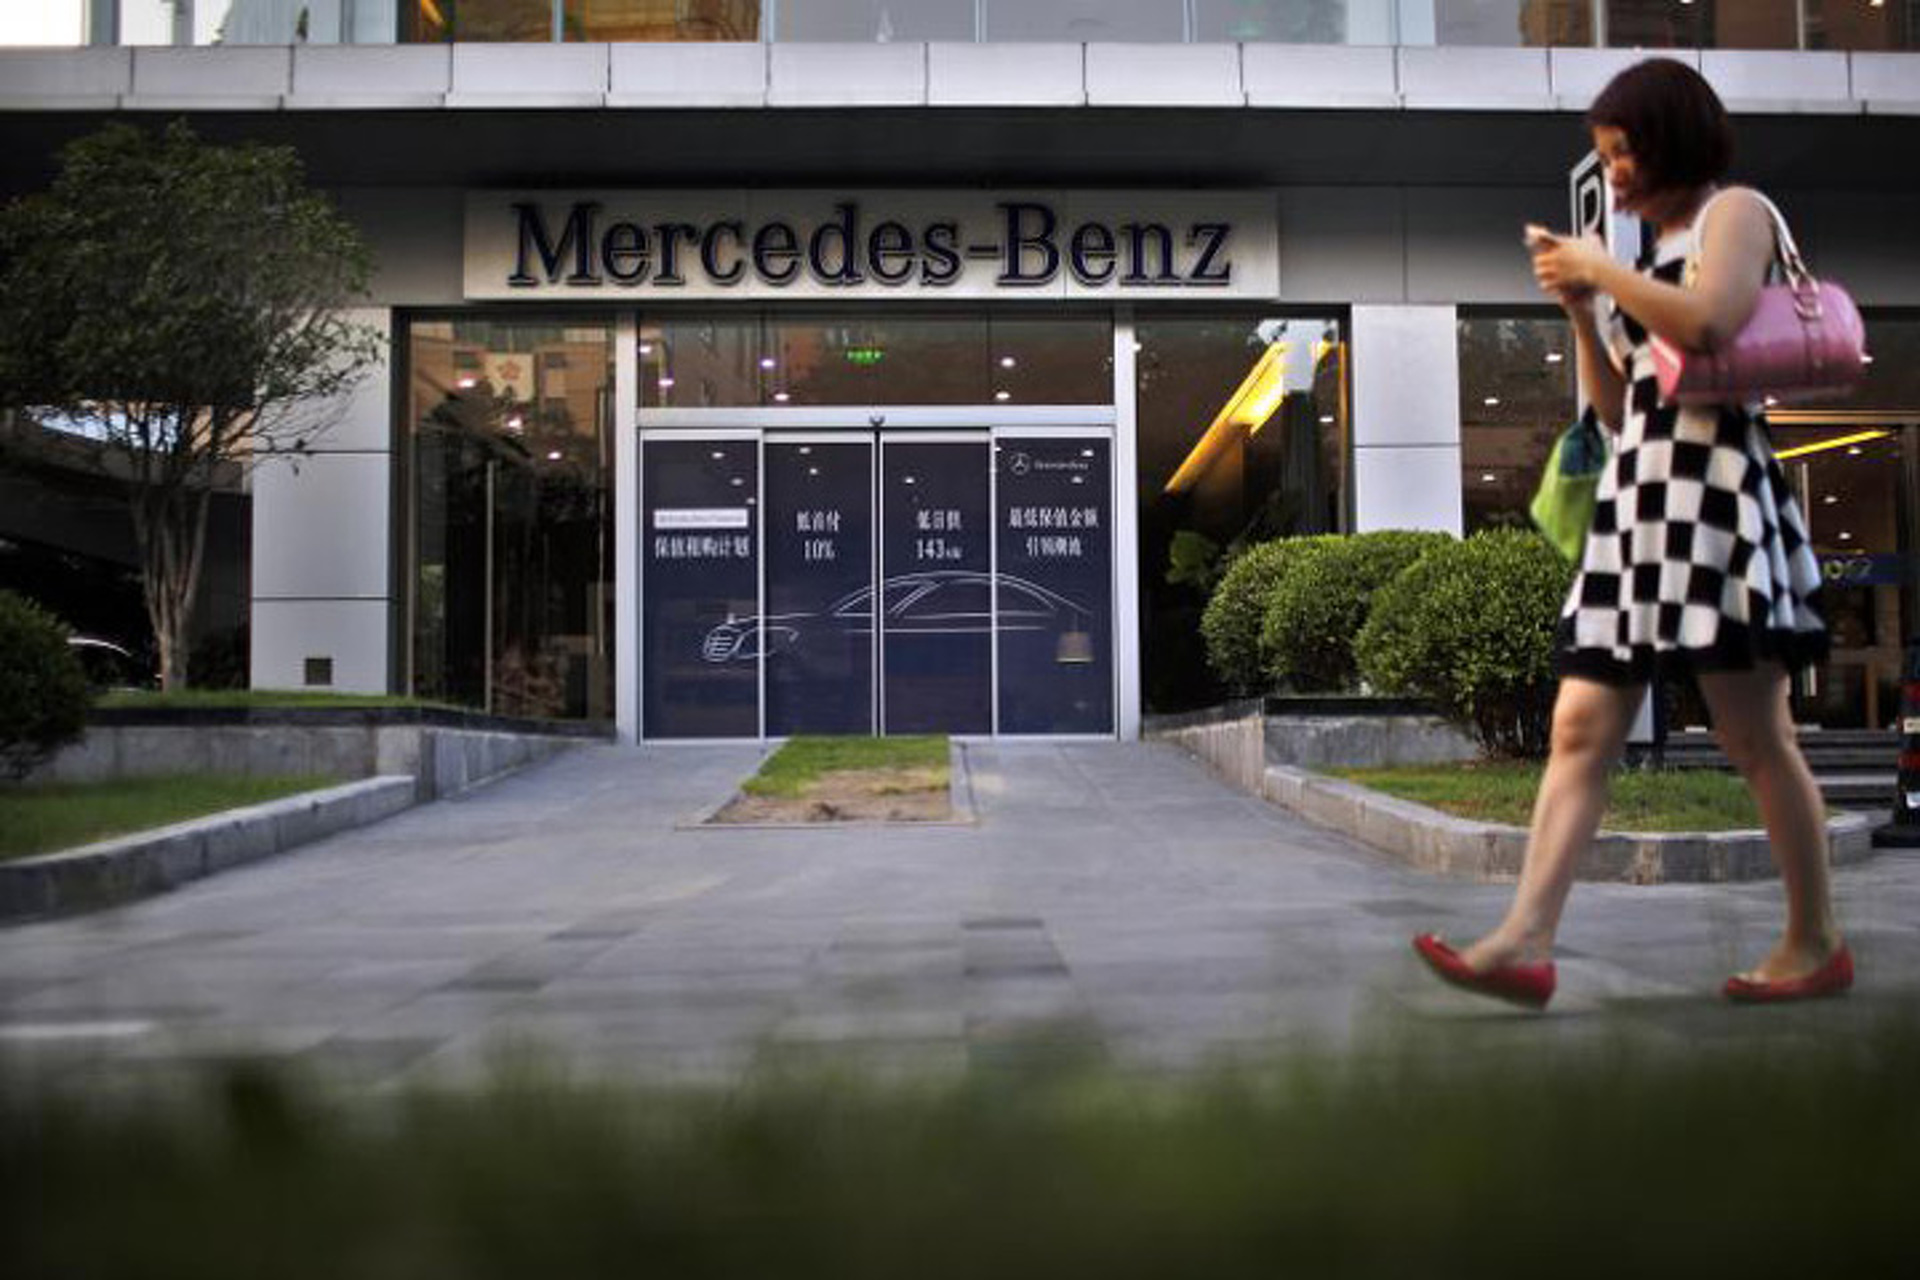 Guilty! China Finds Mercedes at Fault for Price Gouging